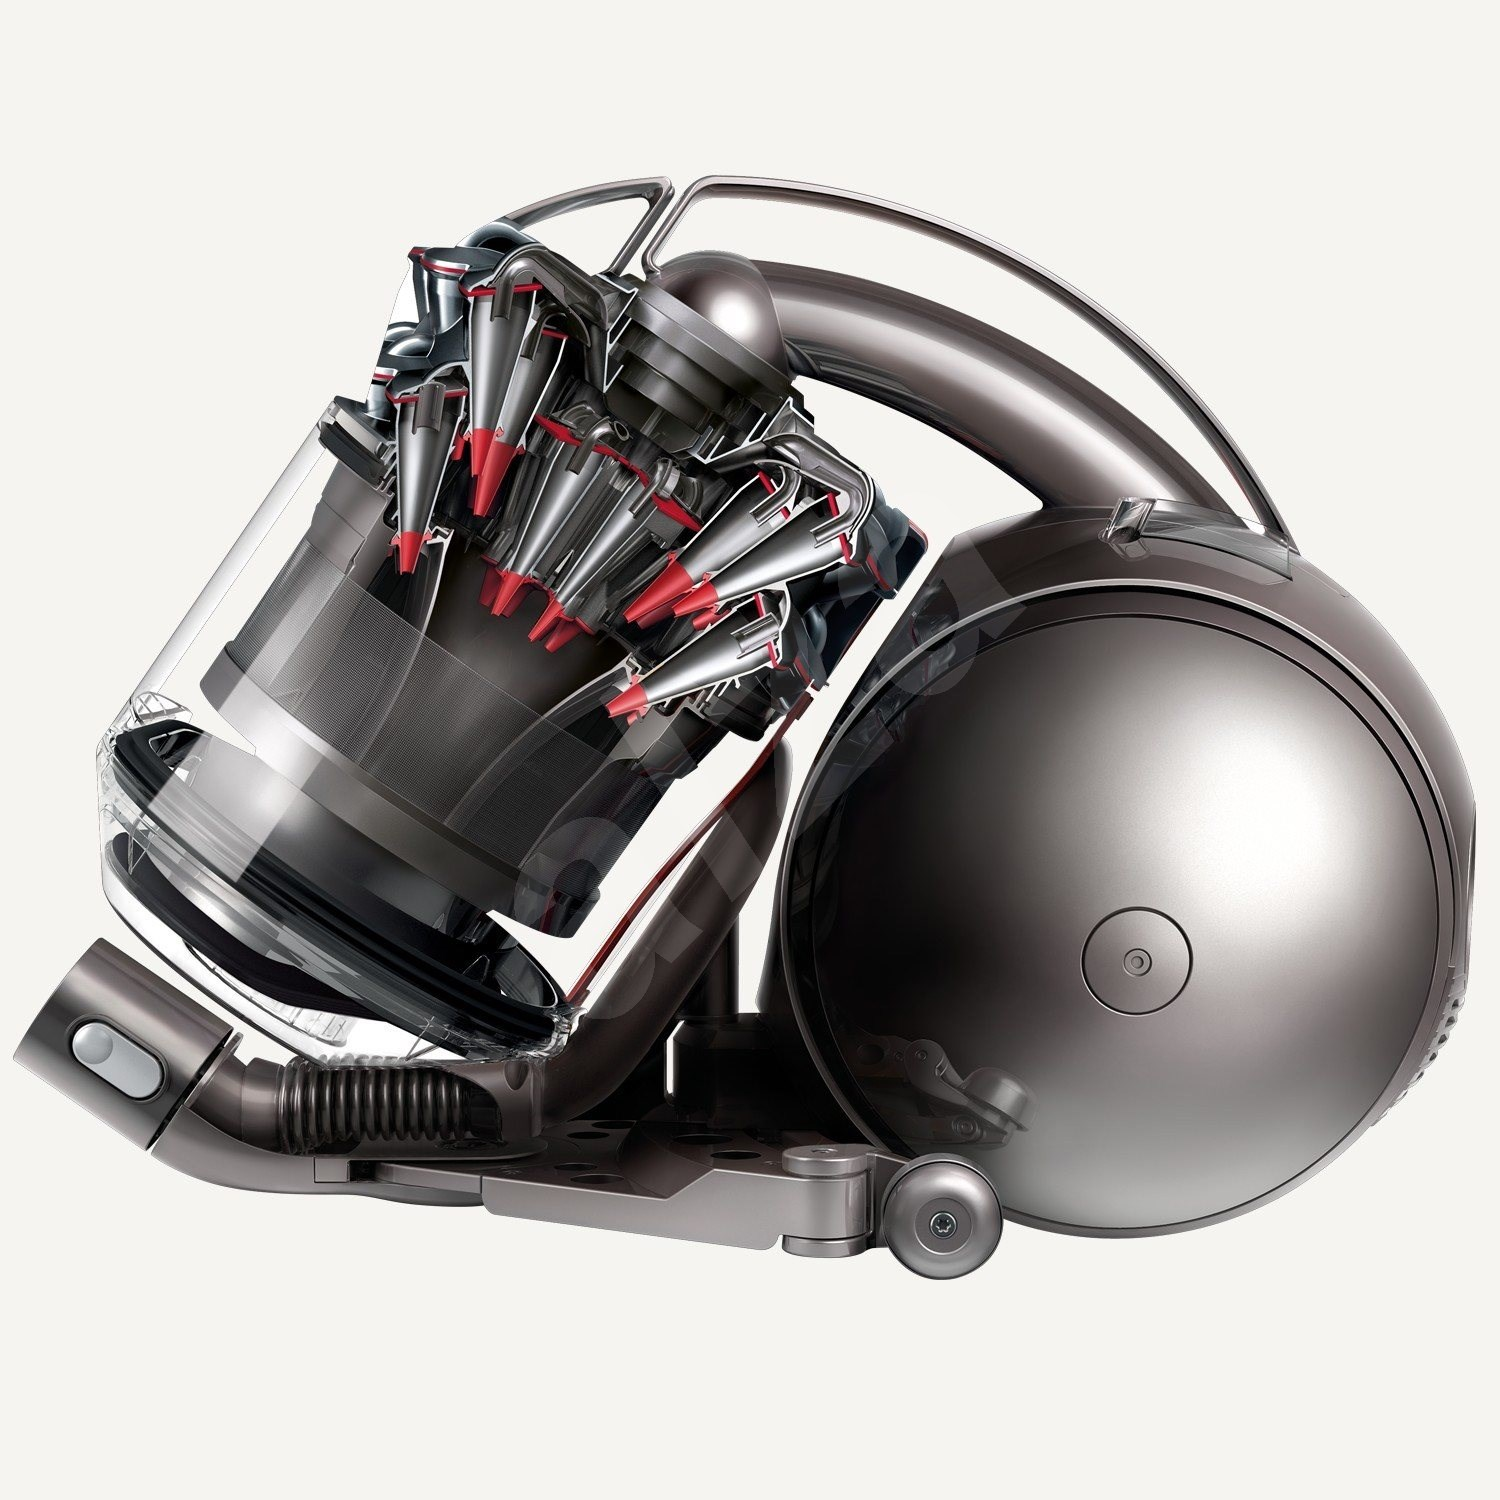 dyson dc52 animal complete vacuum cleaner. Black Bedroom Furniture Sets. Home Design Ideas